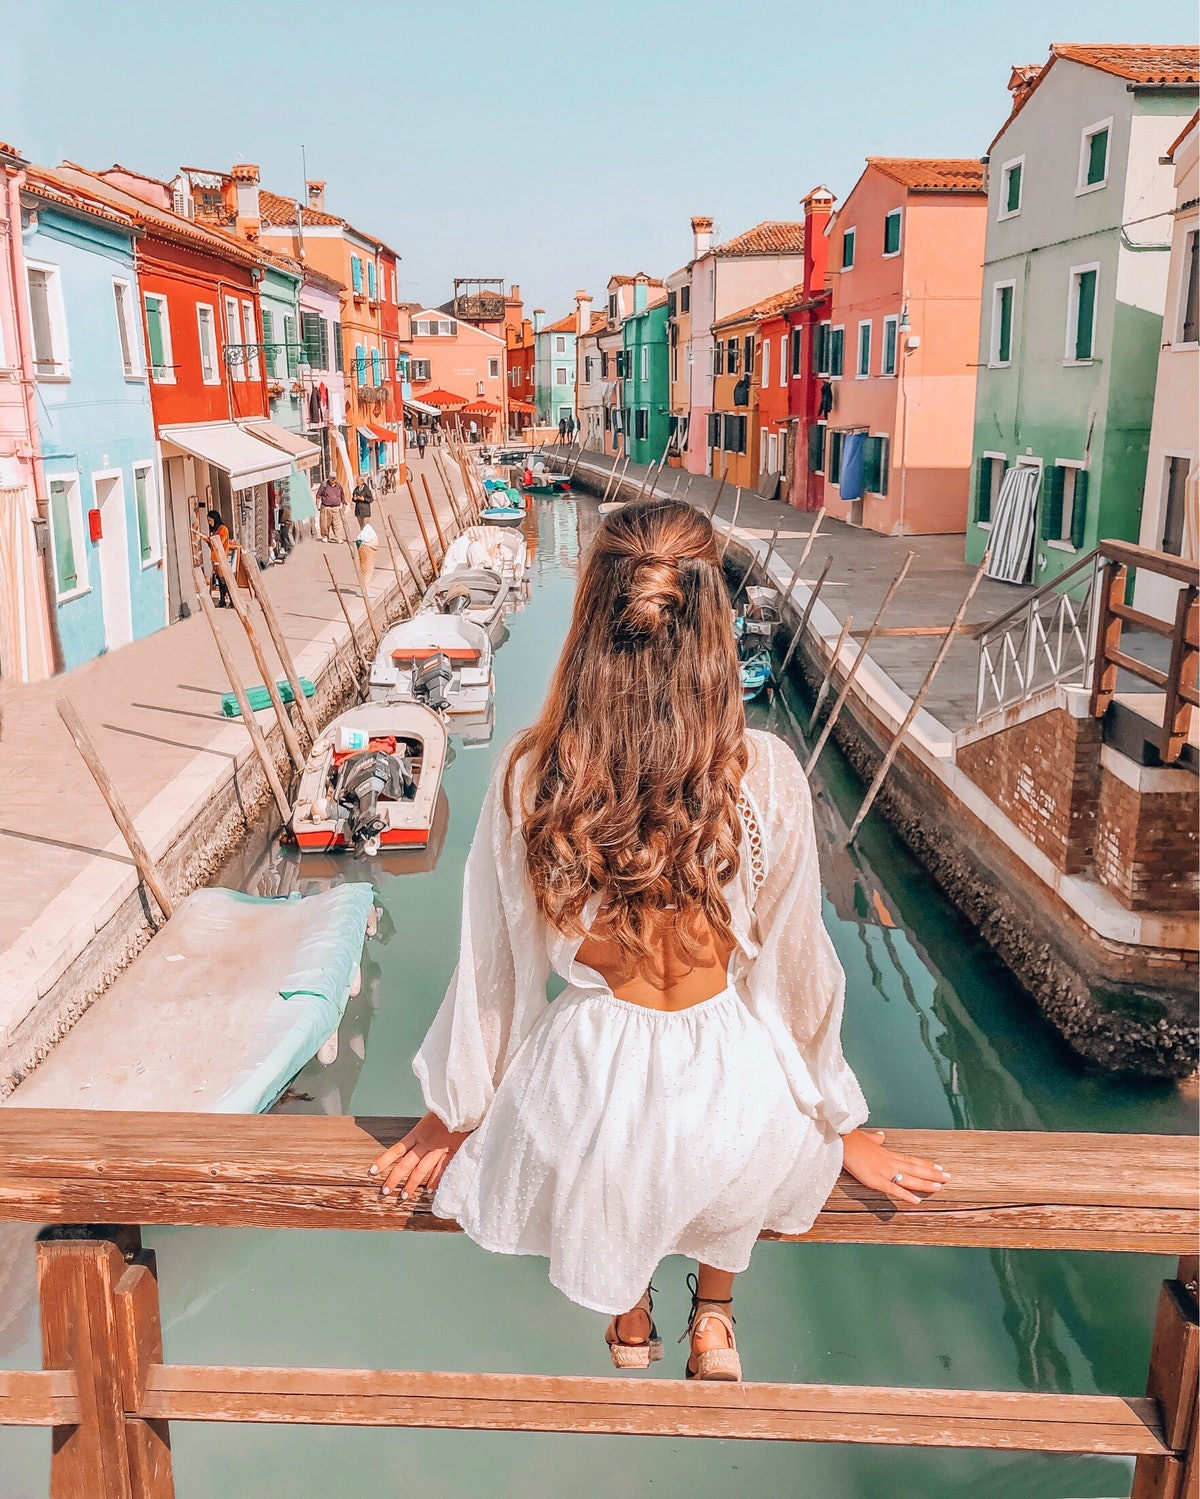 A brunette woman in a white sundress sits on a bridge overlooking a canal and colorful buildings in ...